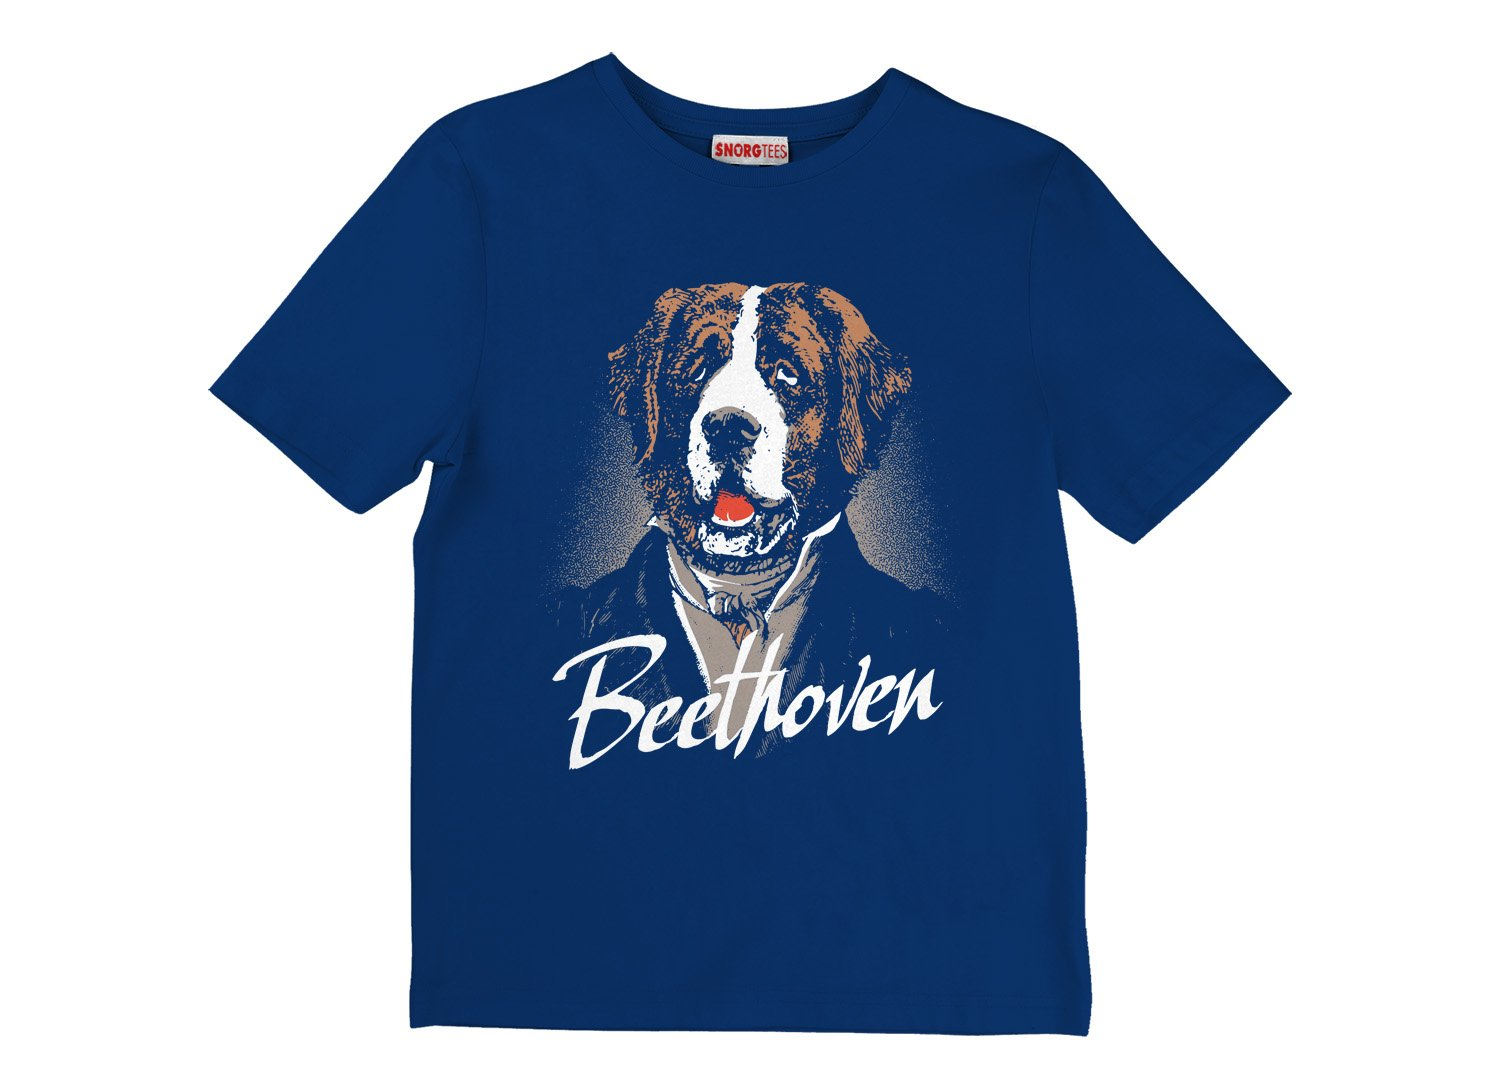 Beethoven on Kids T-Shirt